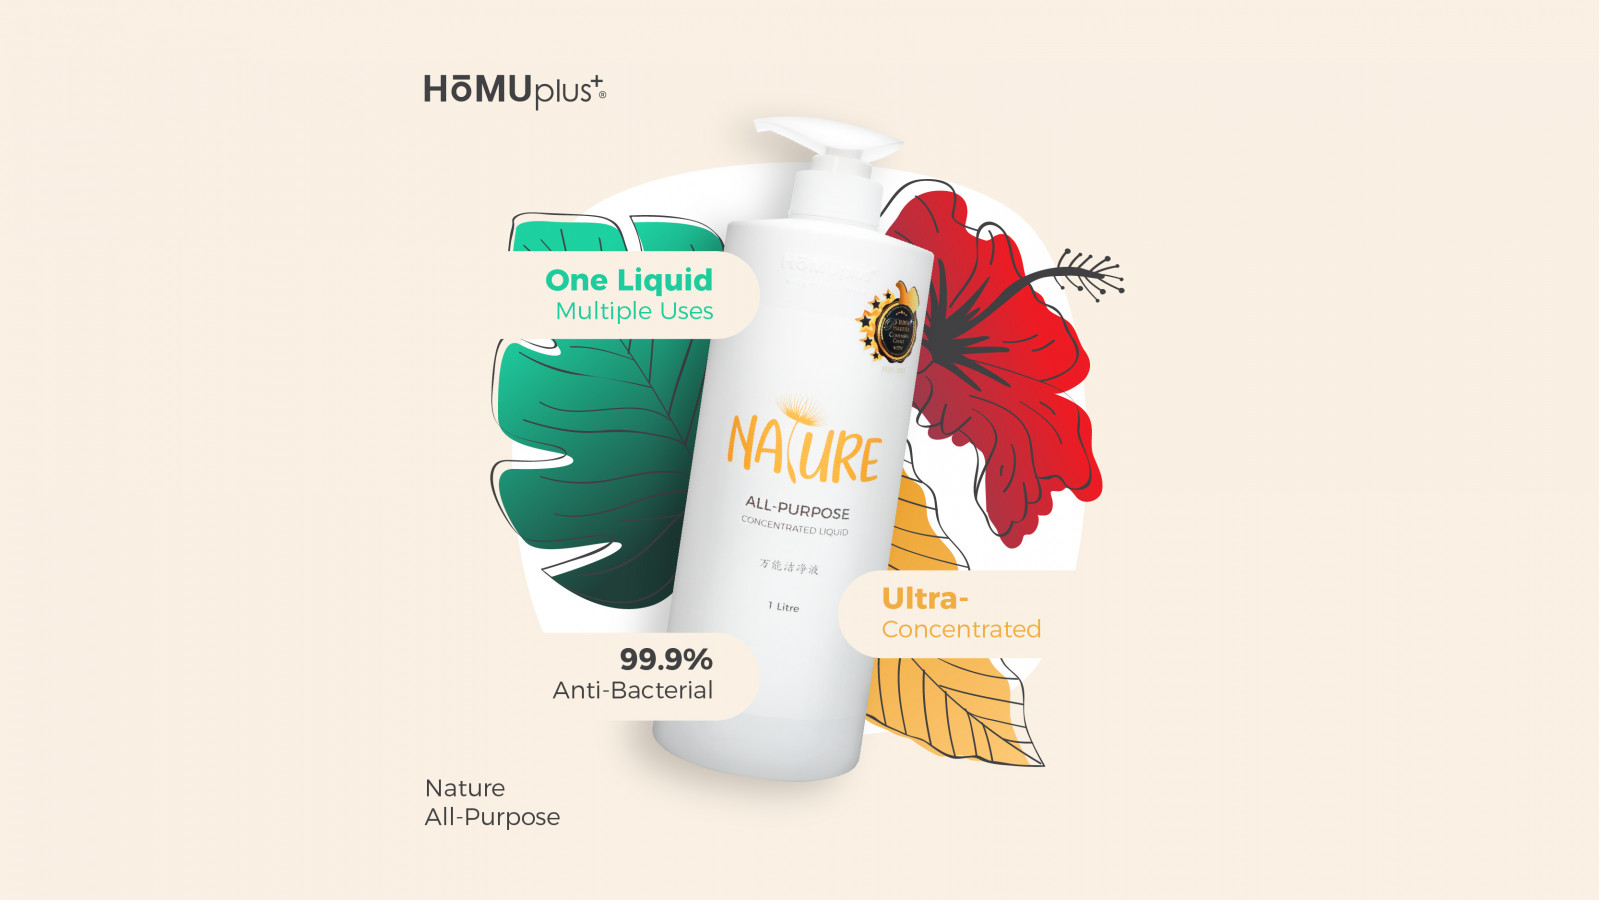 Ways HōMUplus+ Nature All-Purpose can positively change your life?